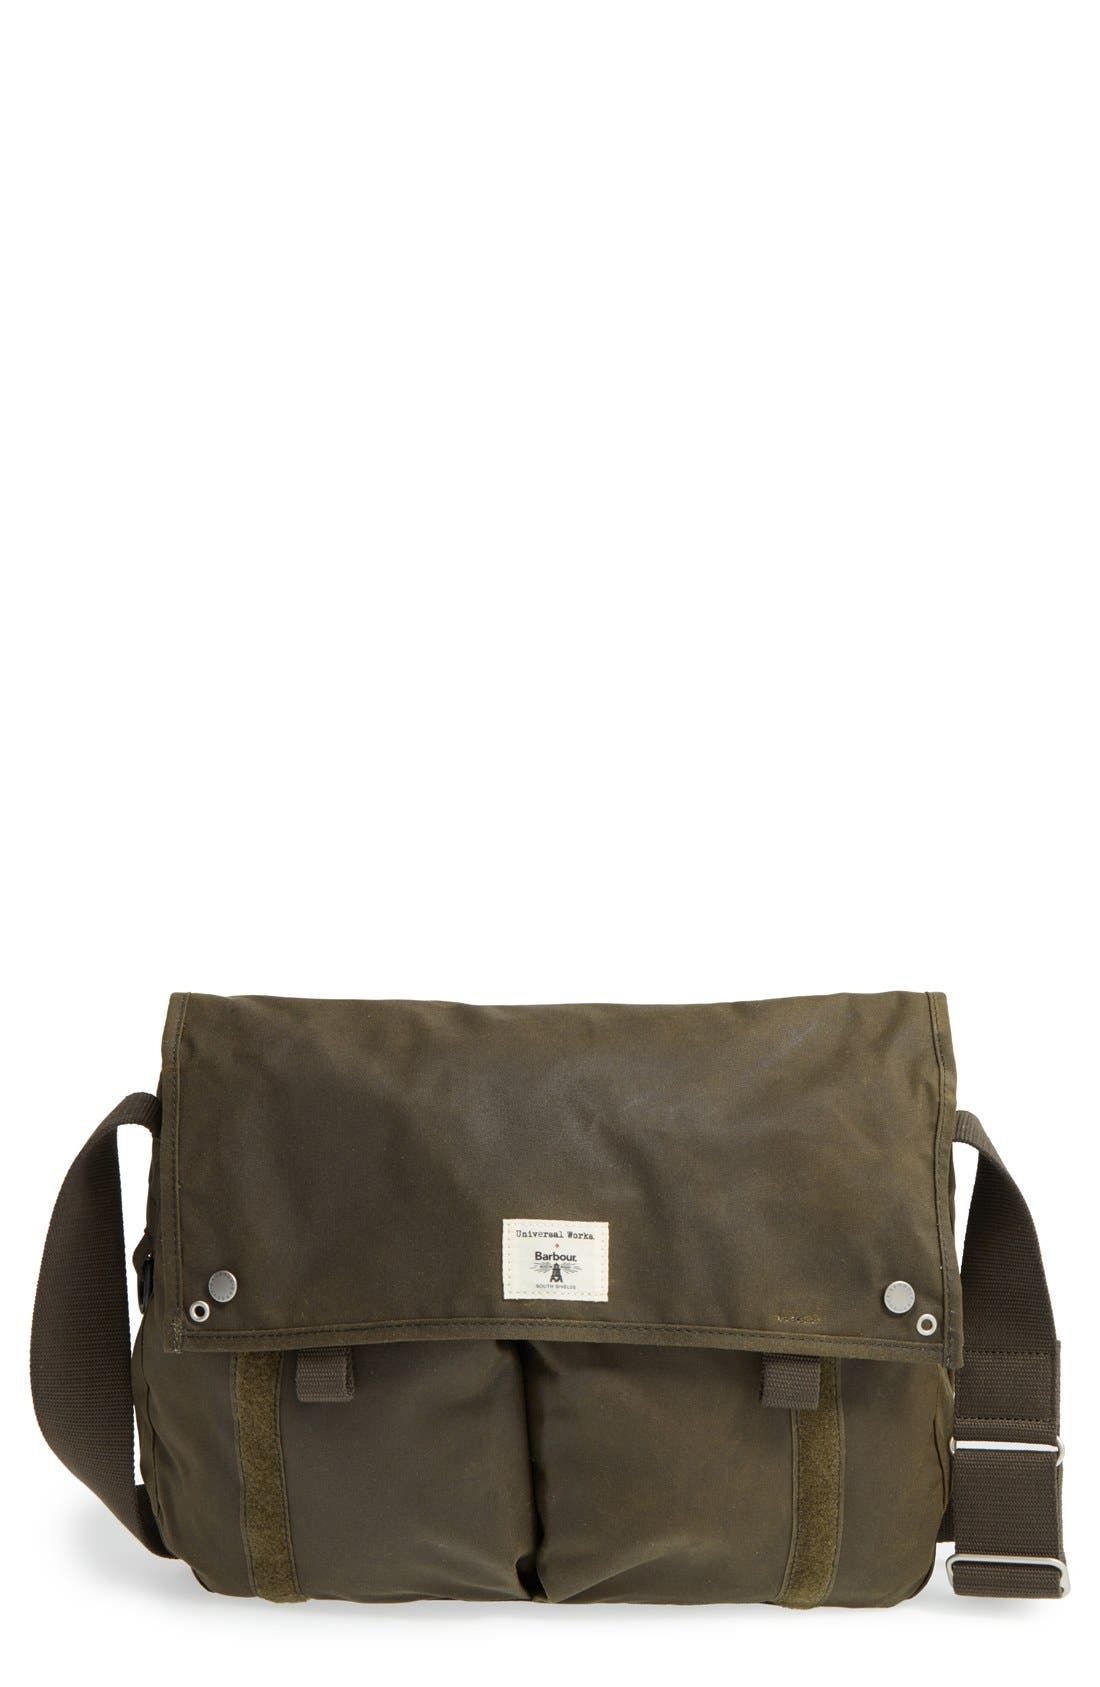 BARBOUR Waxed Canvas Messenger Bag, Main, color, 340